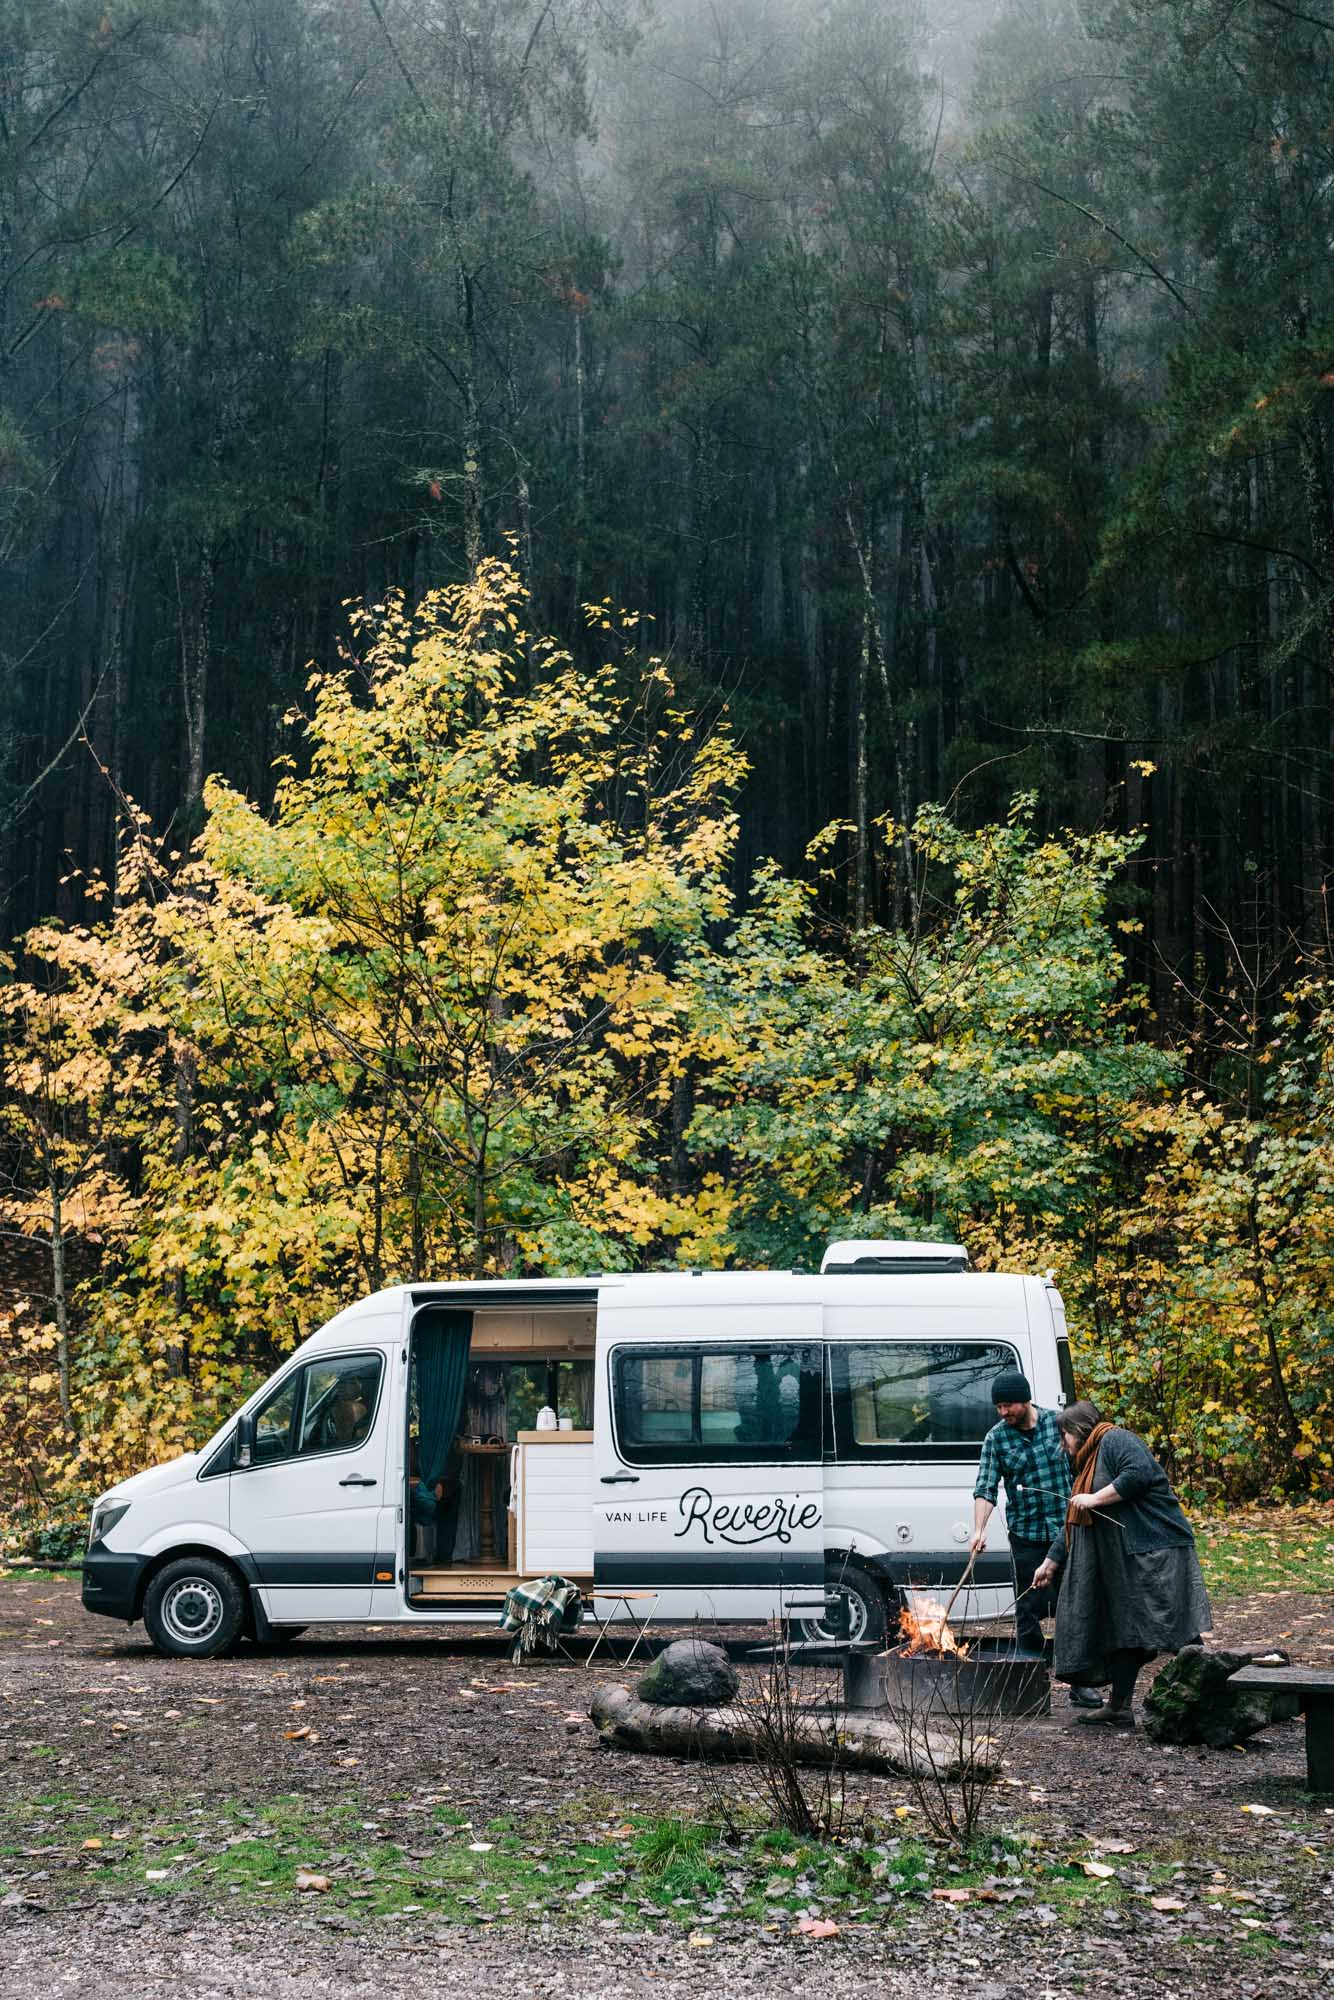 Reverie Road, Mercedes Sprinter van for hire. Photography by Marnie Hawson.